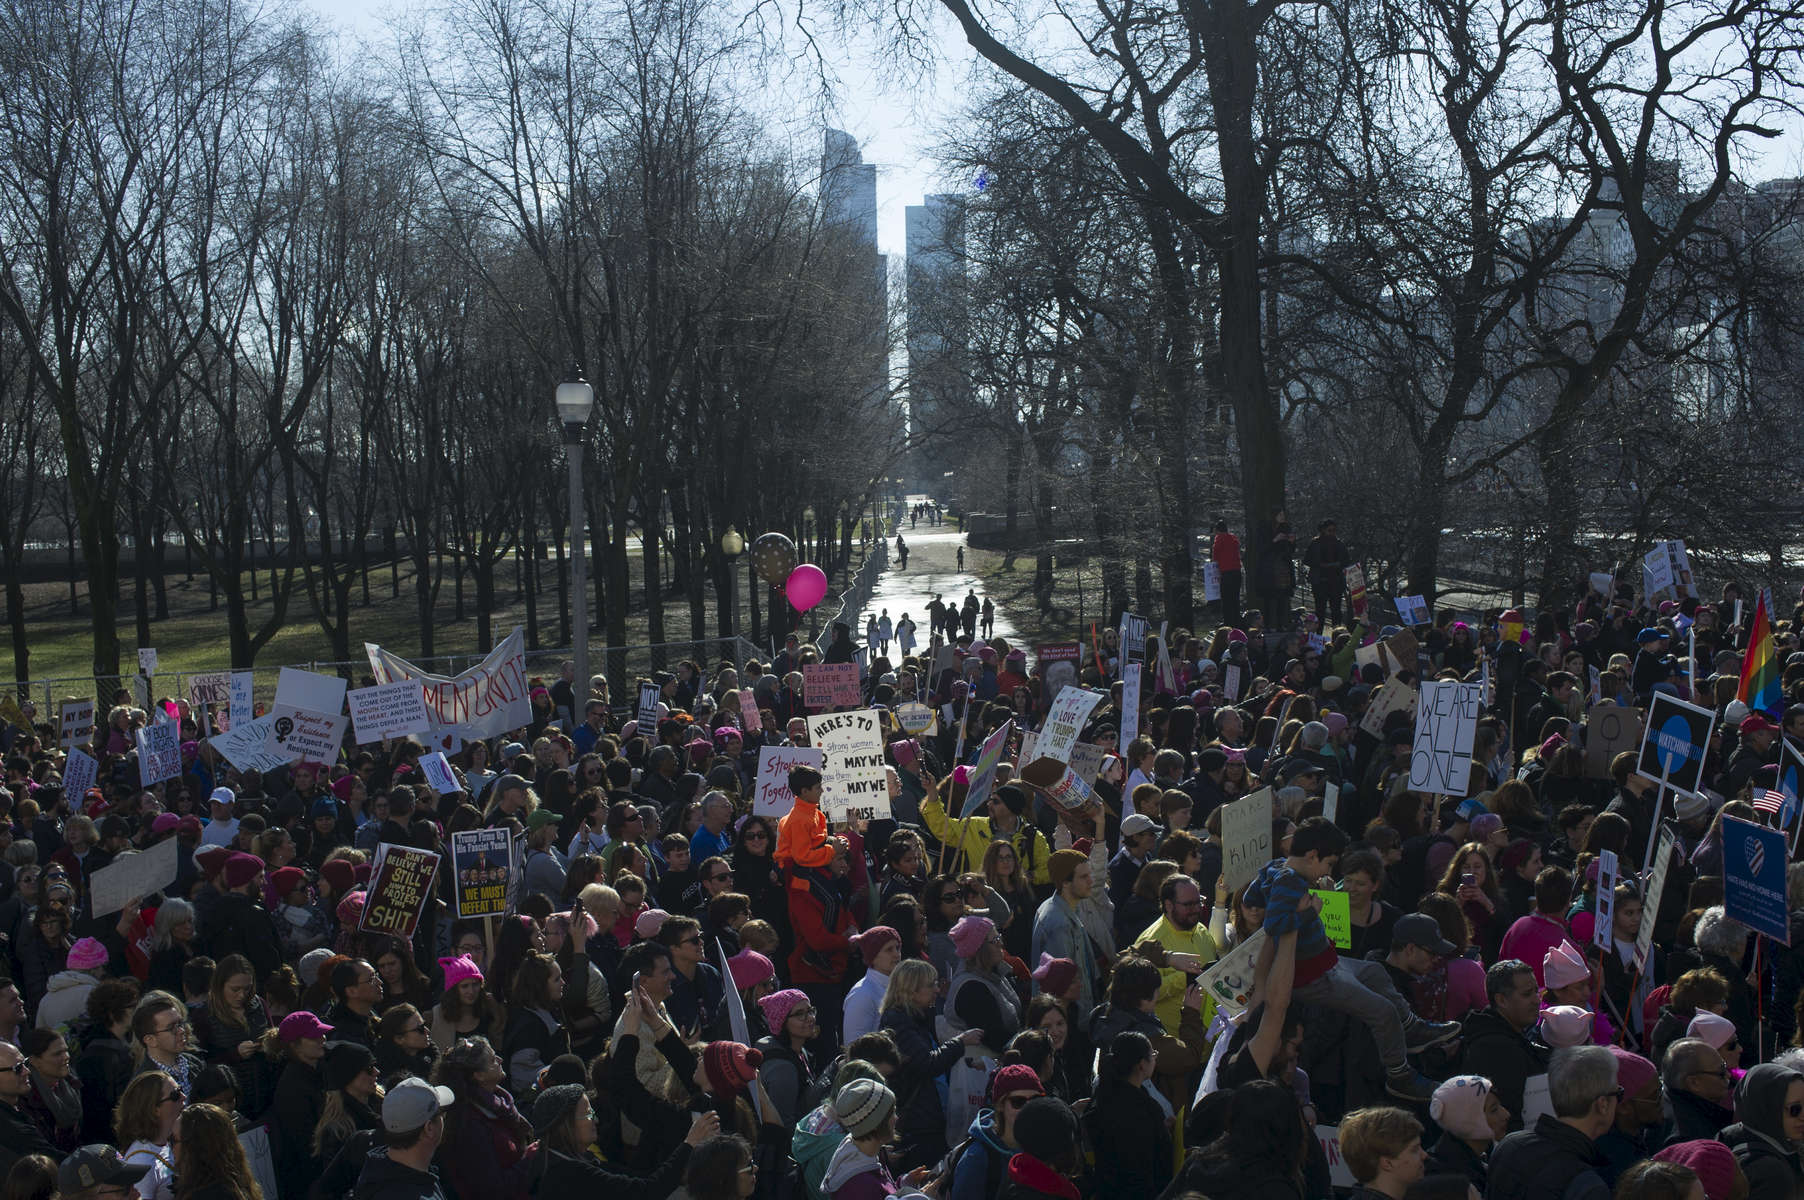 Marchers leave Grant Park and move into Chicago's loop during the Women's March, January 21, 2017.